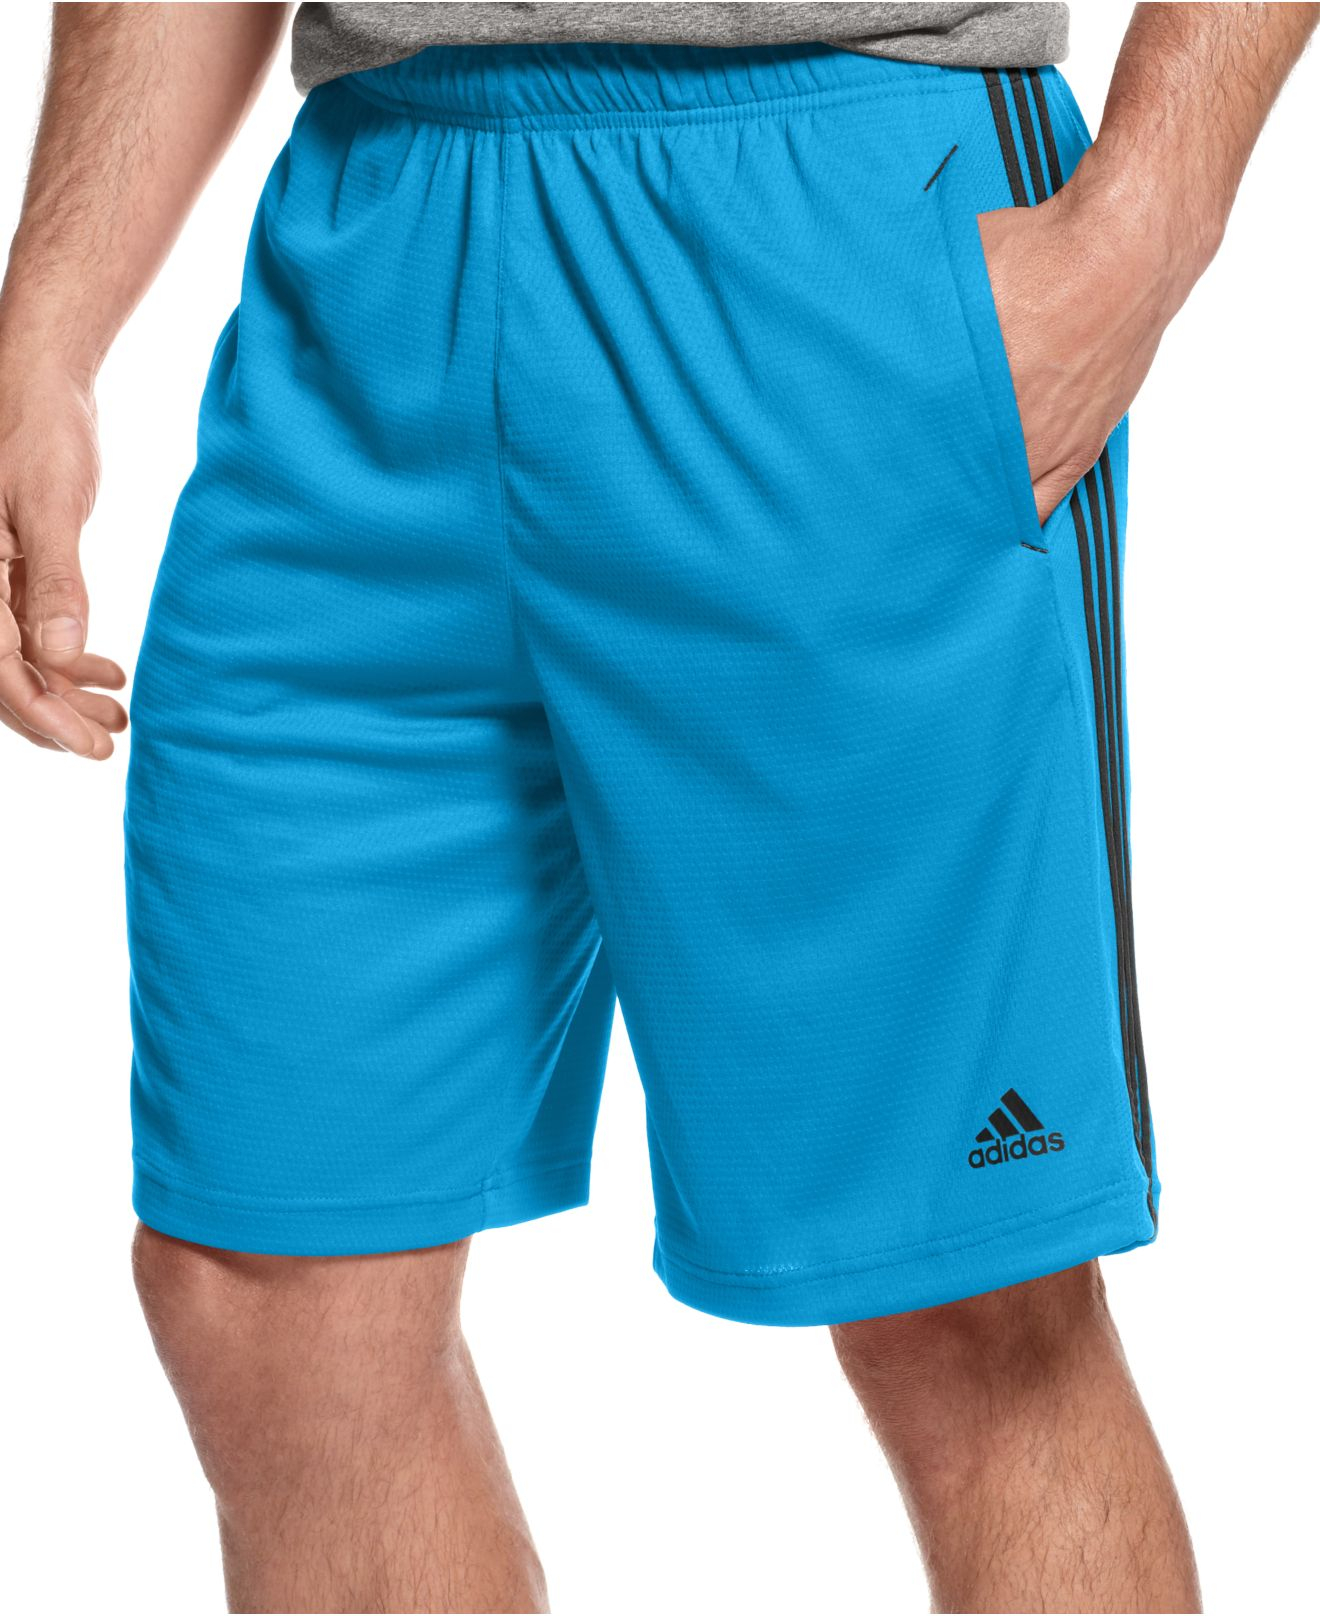 lyst adidas climalite essential shorts in black for men. Black Bedroom Furniture Sets. Home Design Ideas